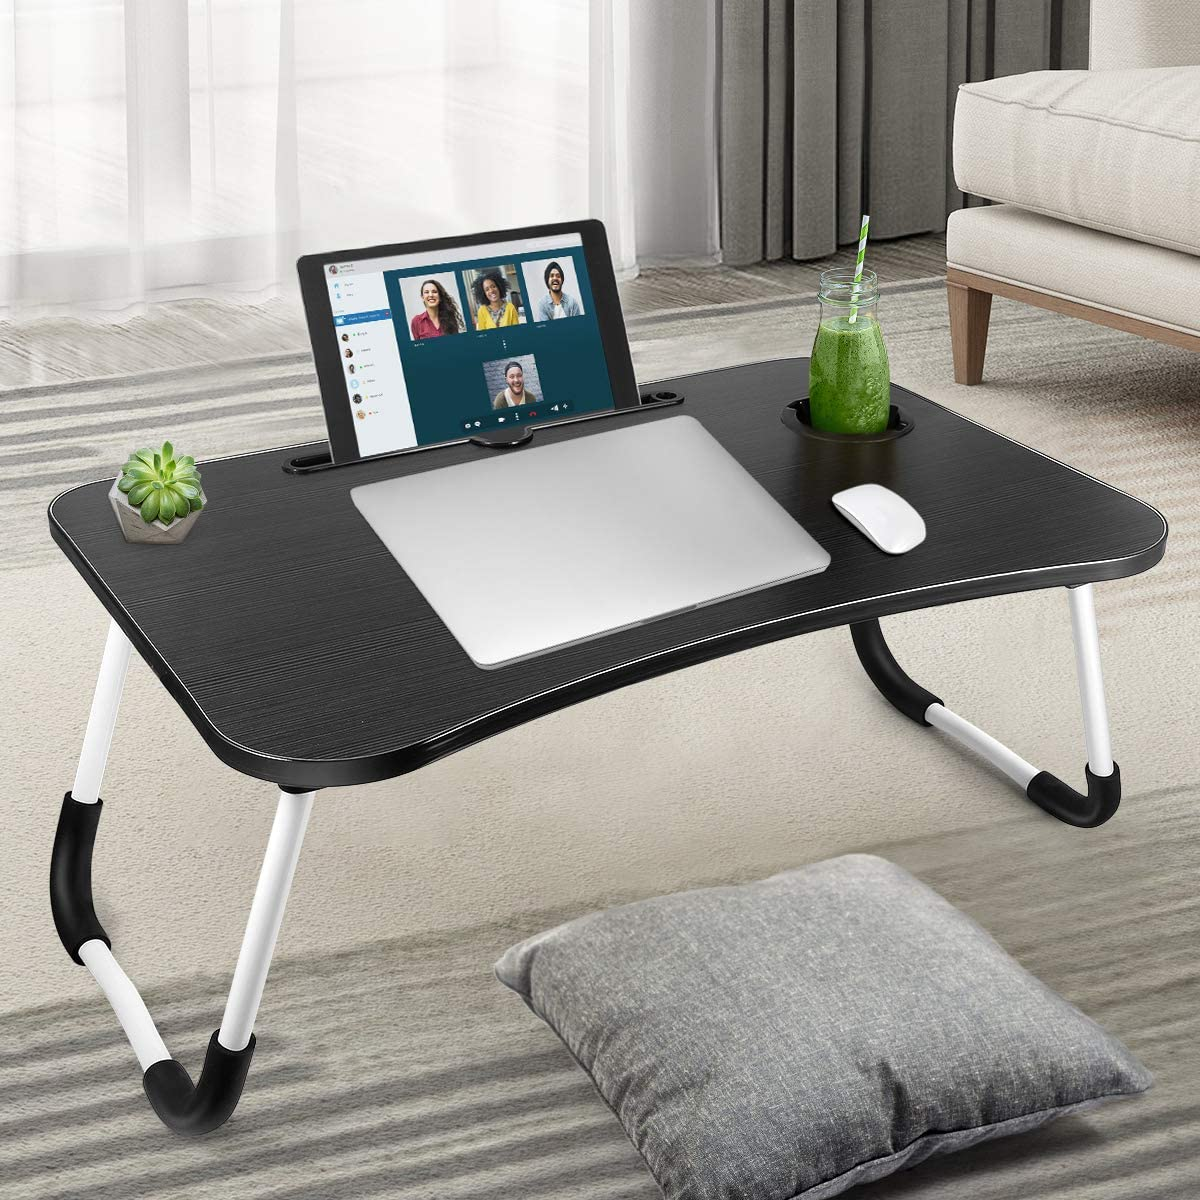 Foldable Laptop Table, Portable Laptop Bed Tray Table, Lap Standing Desk, Notebook Stand Reading Holder Breakfast Serving Bed Tray with Tablet Slots & Cup Holder for Bed/Couch/Sofa